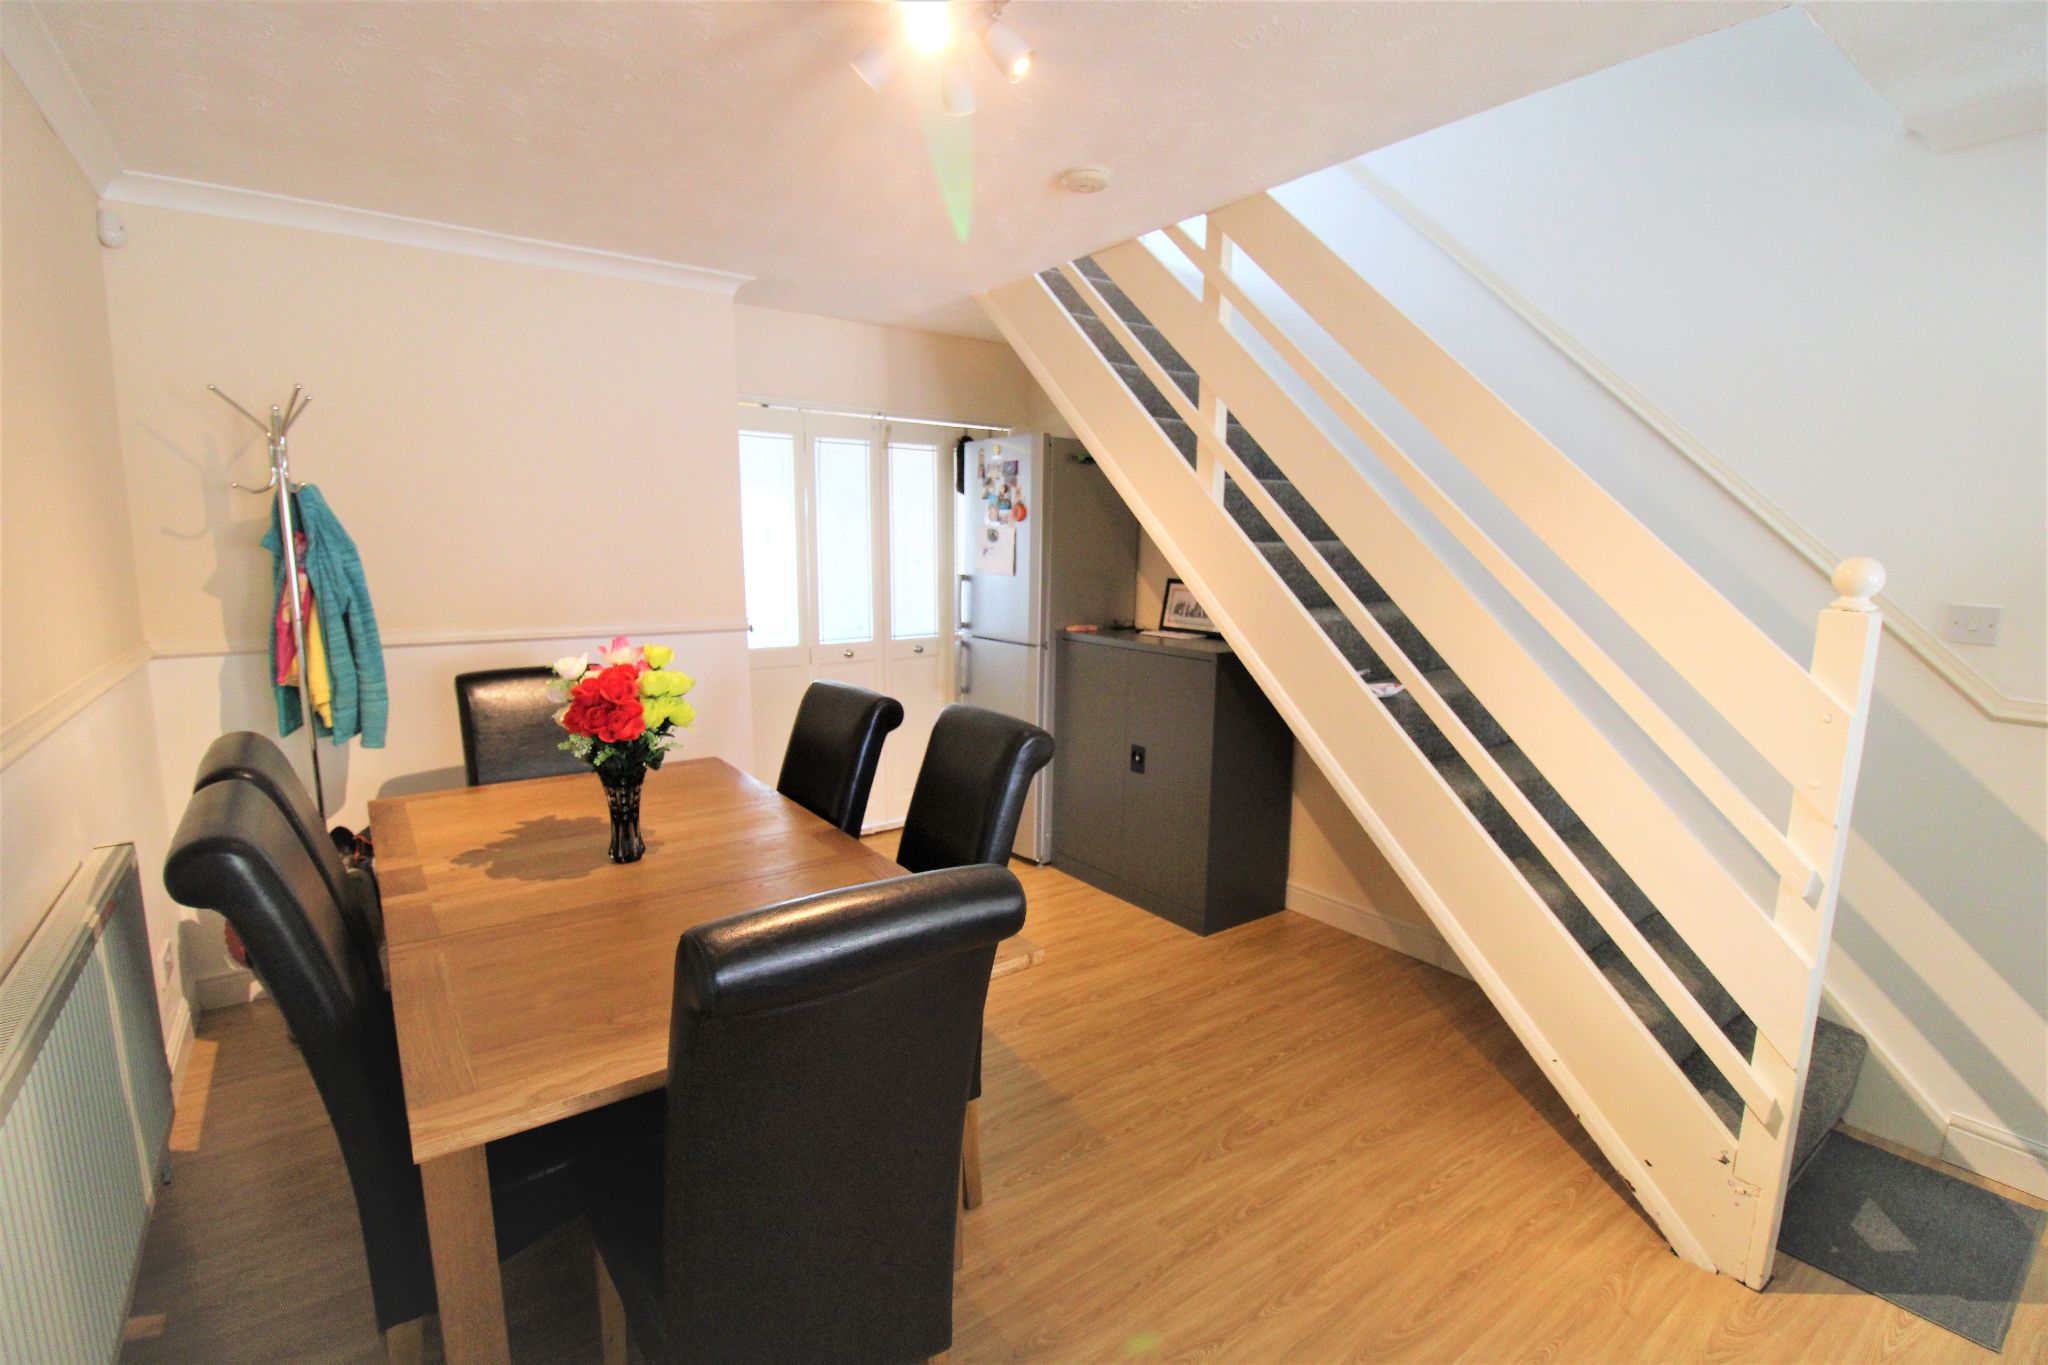 2 Bedroom Mid Terraced House For Sale - Dining Area